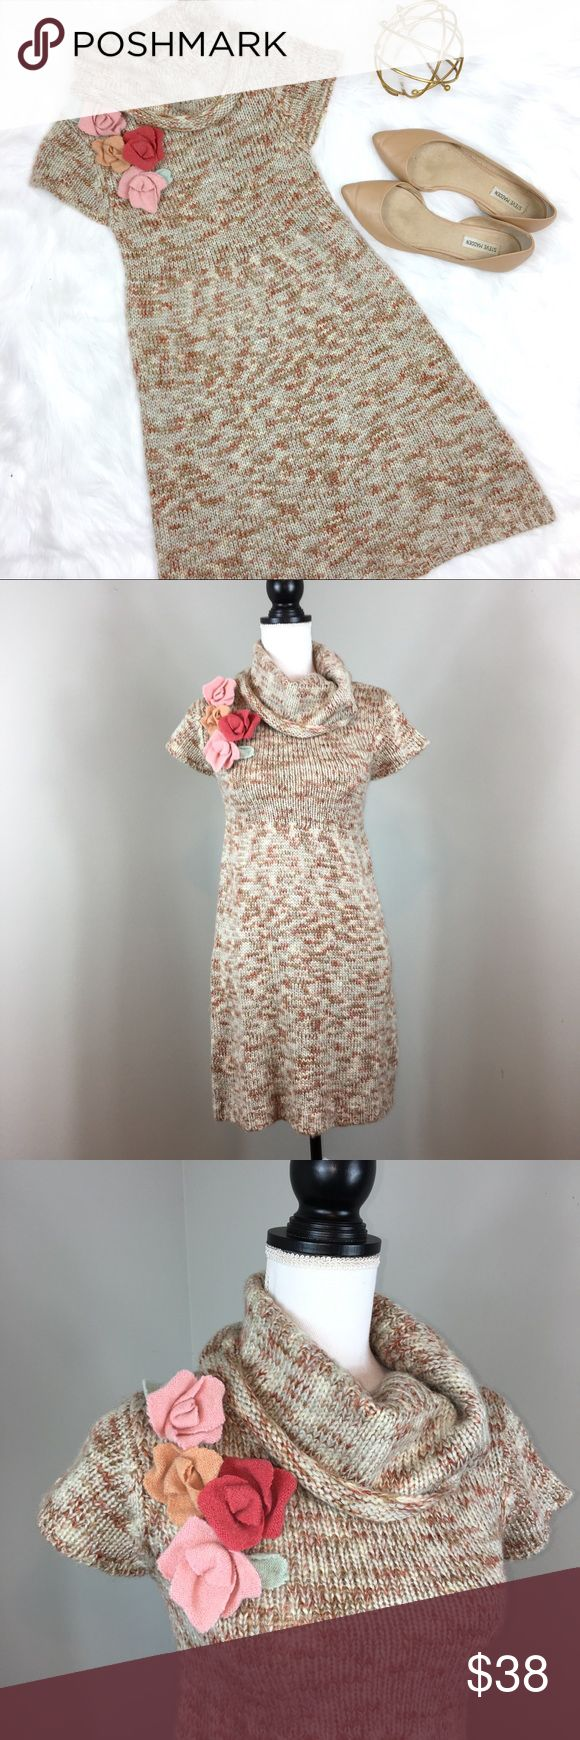 Judith March Sweater Corp Neck Dress Judith March Sweater Cowl Neck Dress. Size small. Approximate measurements flat laid are 34' long and 13' bust. Could fit an extra small as well as a small in my opinion. Good used condition. Very cute flower detail on right shoulder. ❌I do not Trade 🙅🏻 Or model💲 Posh Transactions ONLY Judith March Dresses Mini